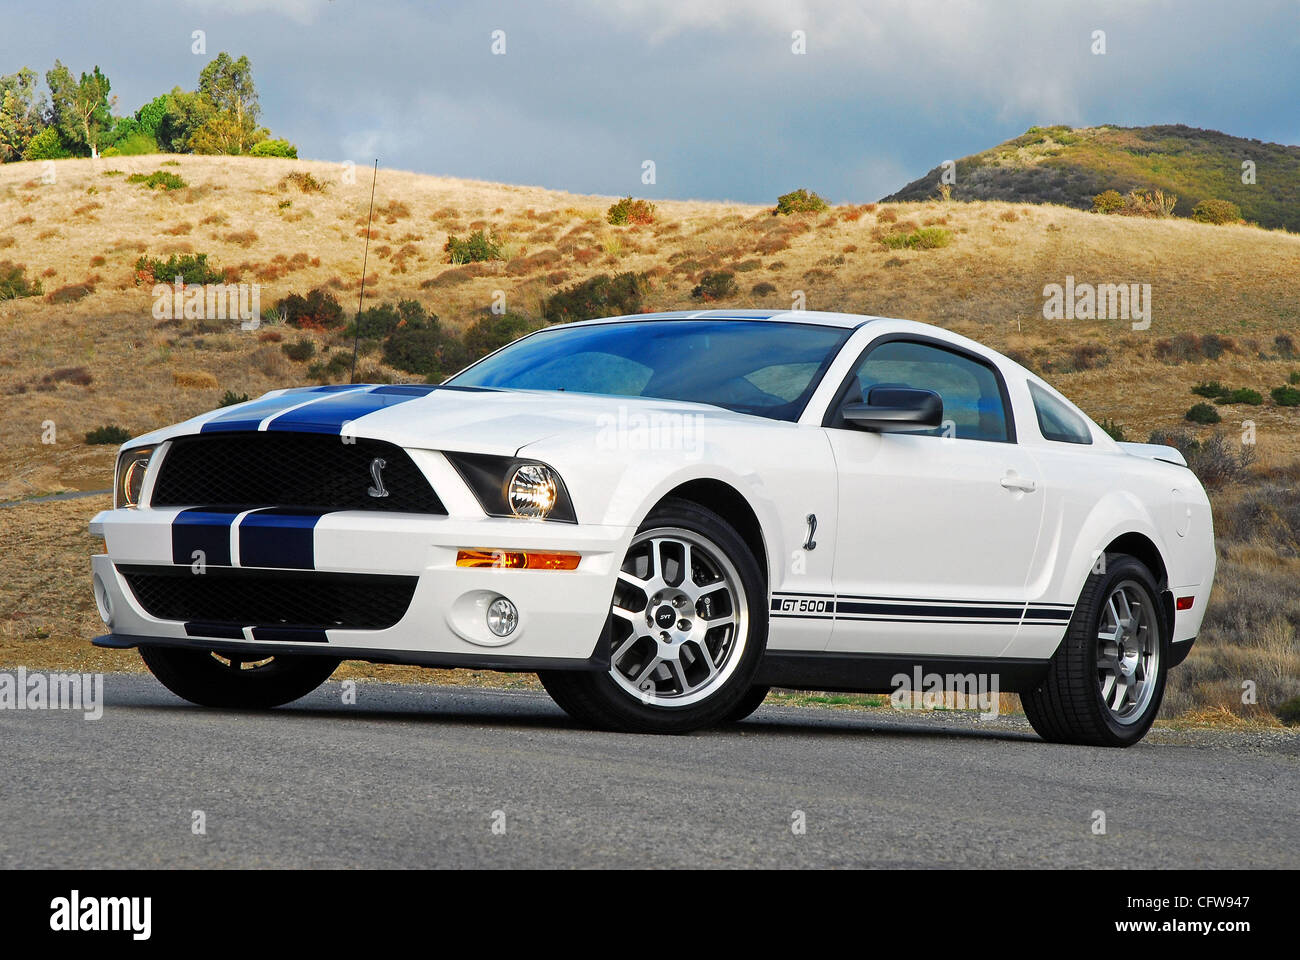 Right side beauty portrait 2007 ford shelby gt500 mustang cobra coupe